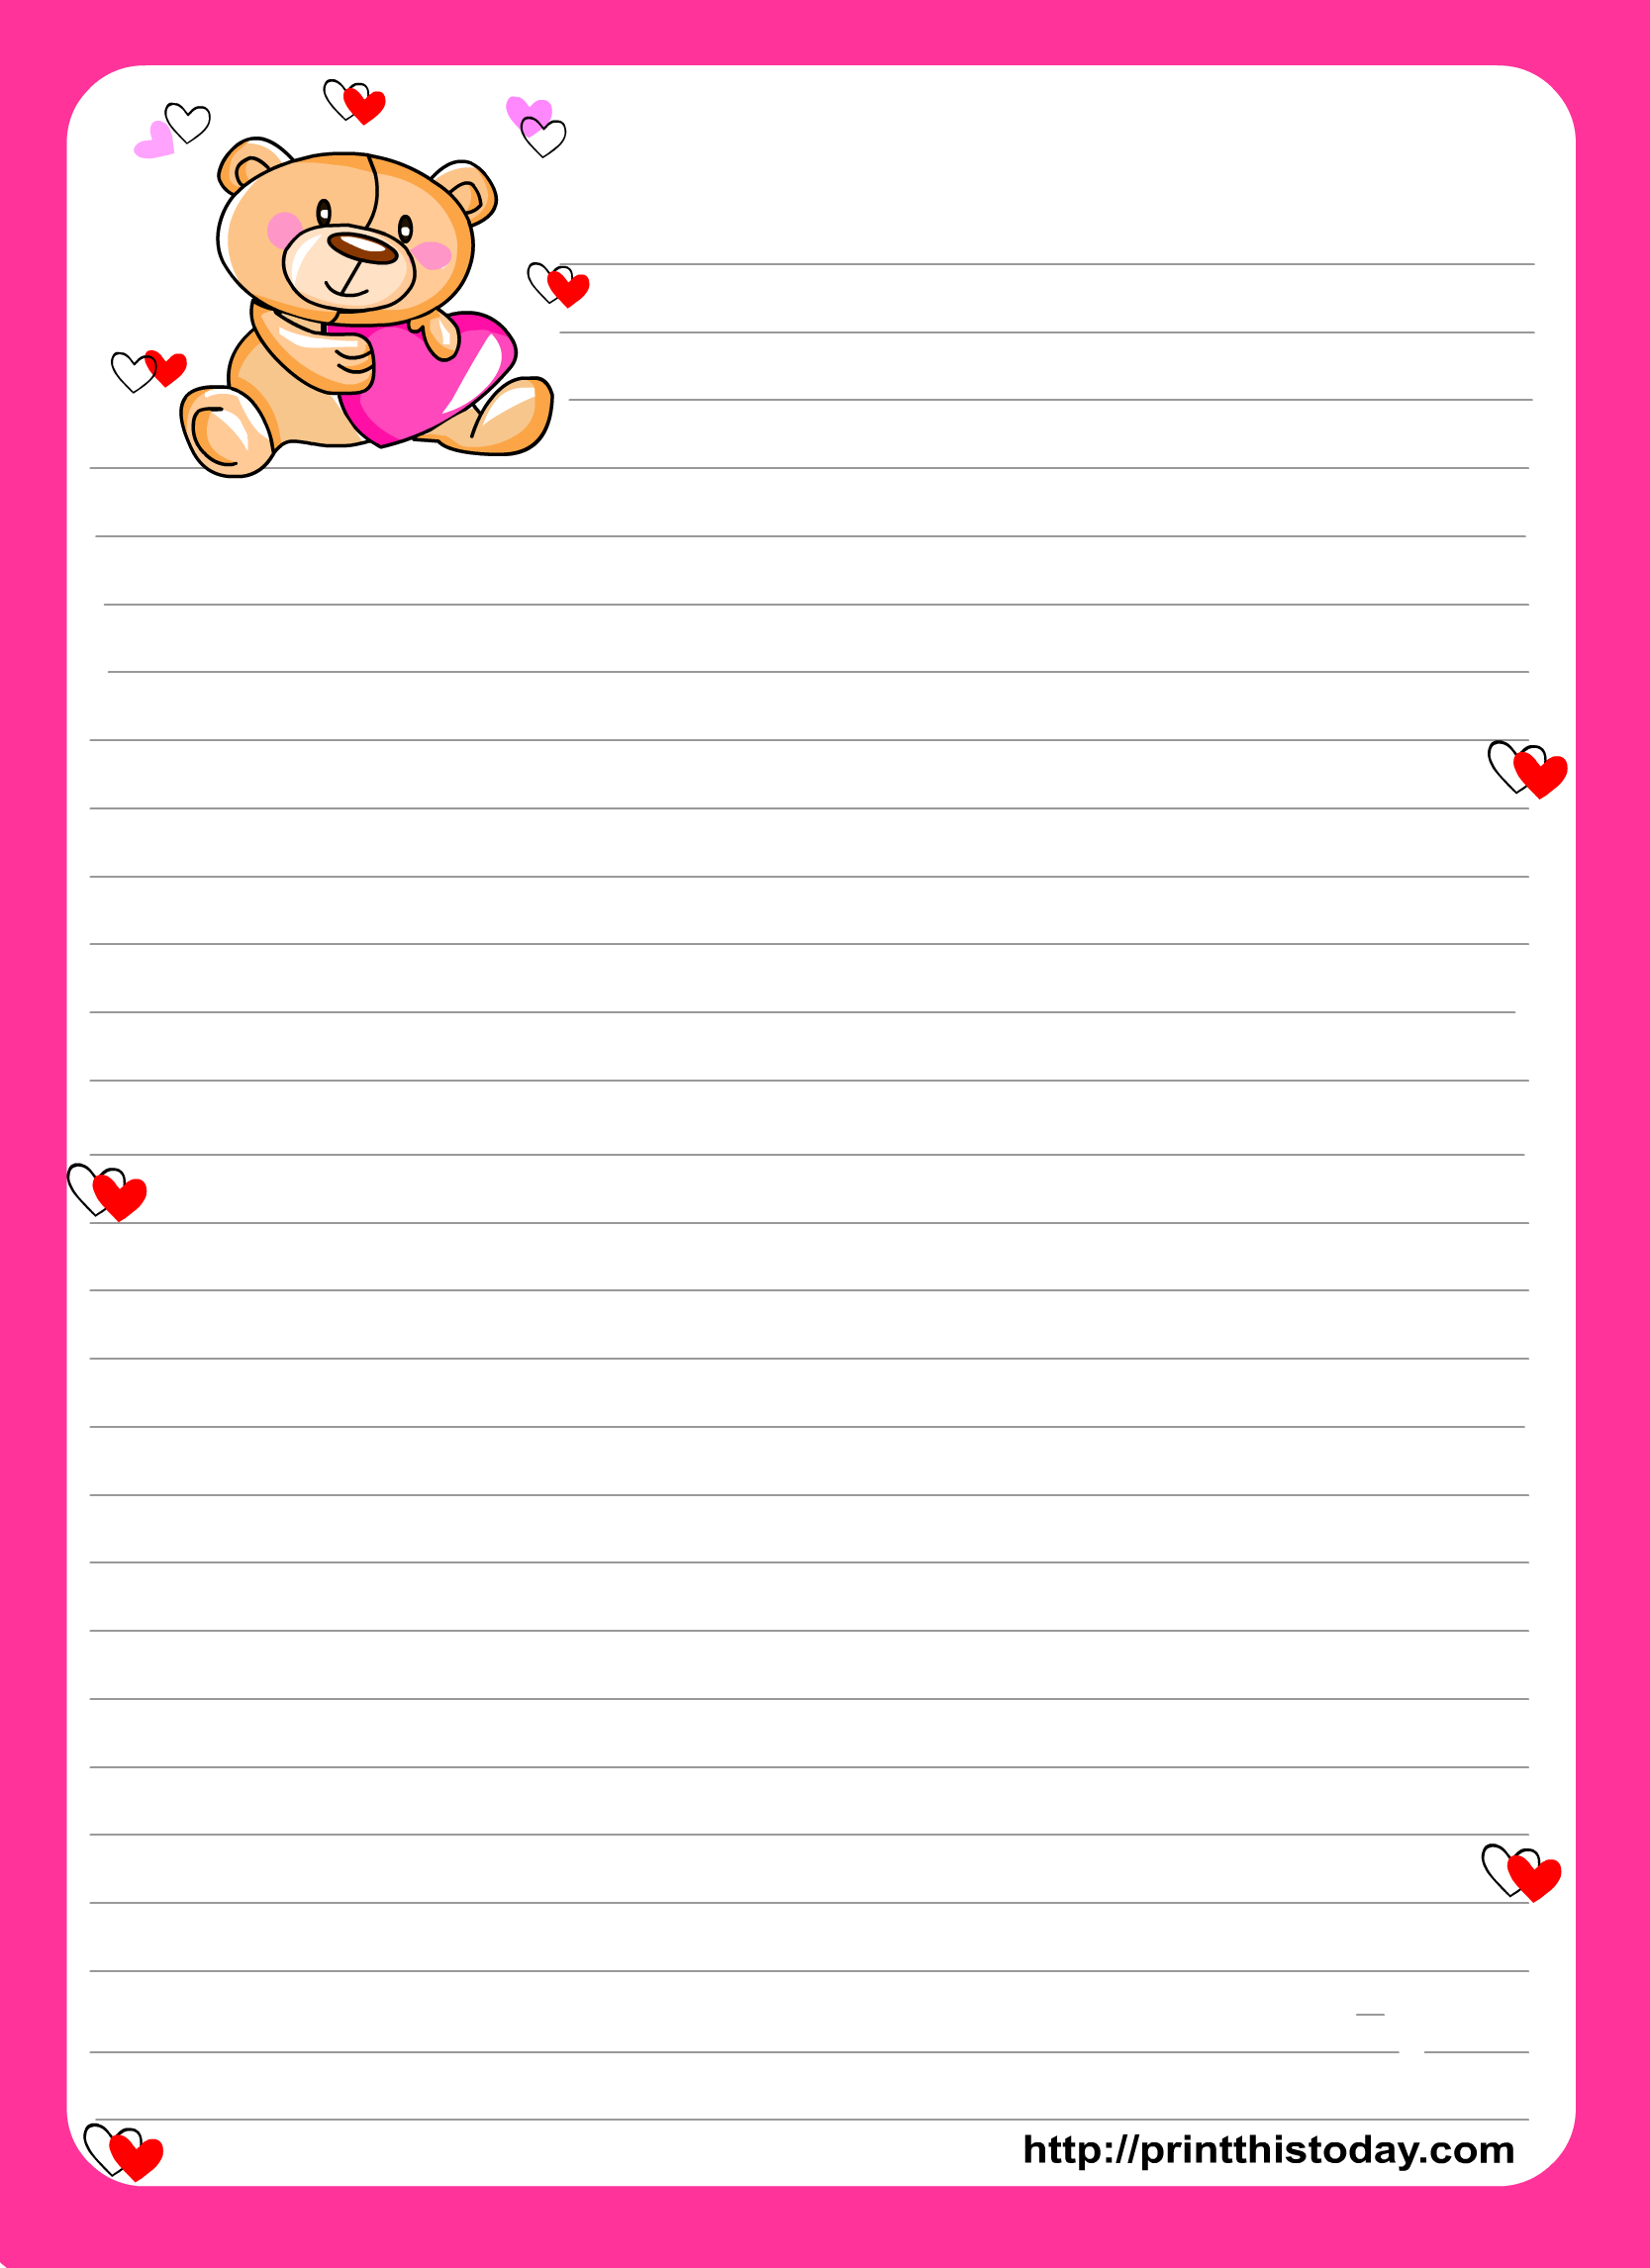 Printable Stationery Paper - Google Search   Stationery - Printables - Free Printable Stationery Writing Paper